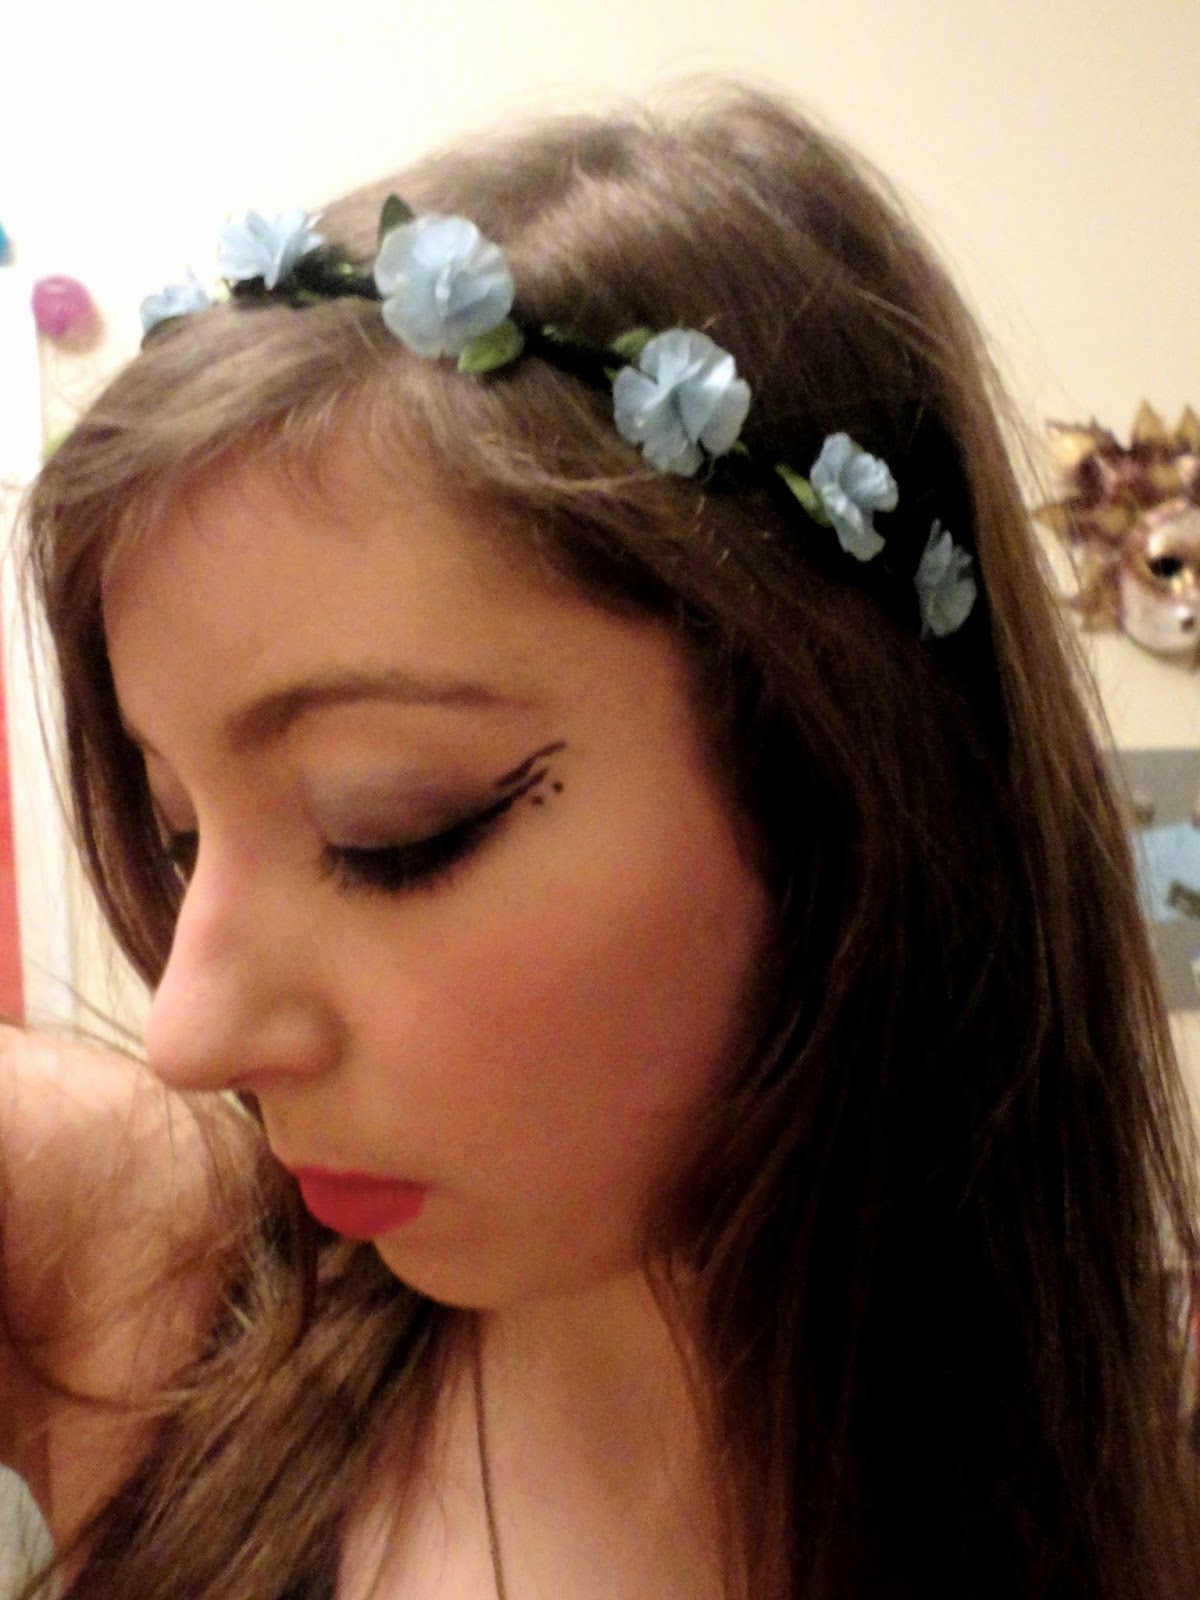 Birthday party nymph elf outfit details of blue flower crown and eye makeup